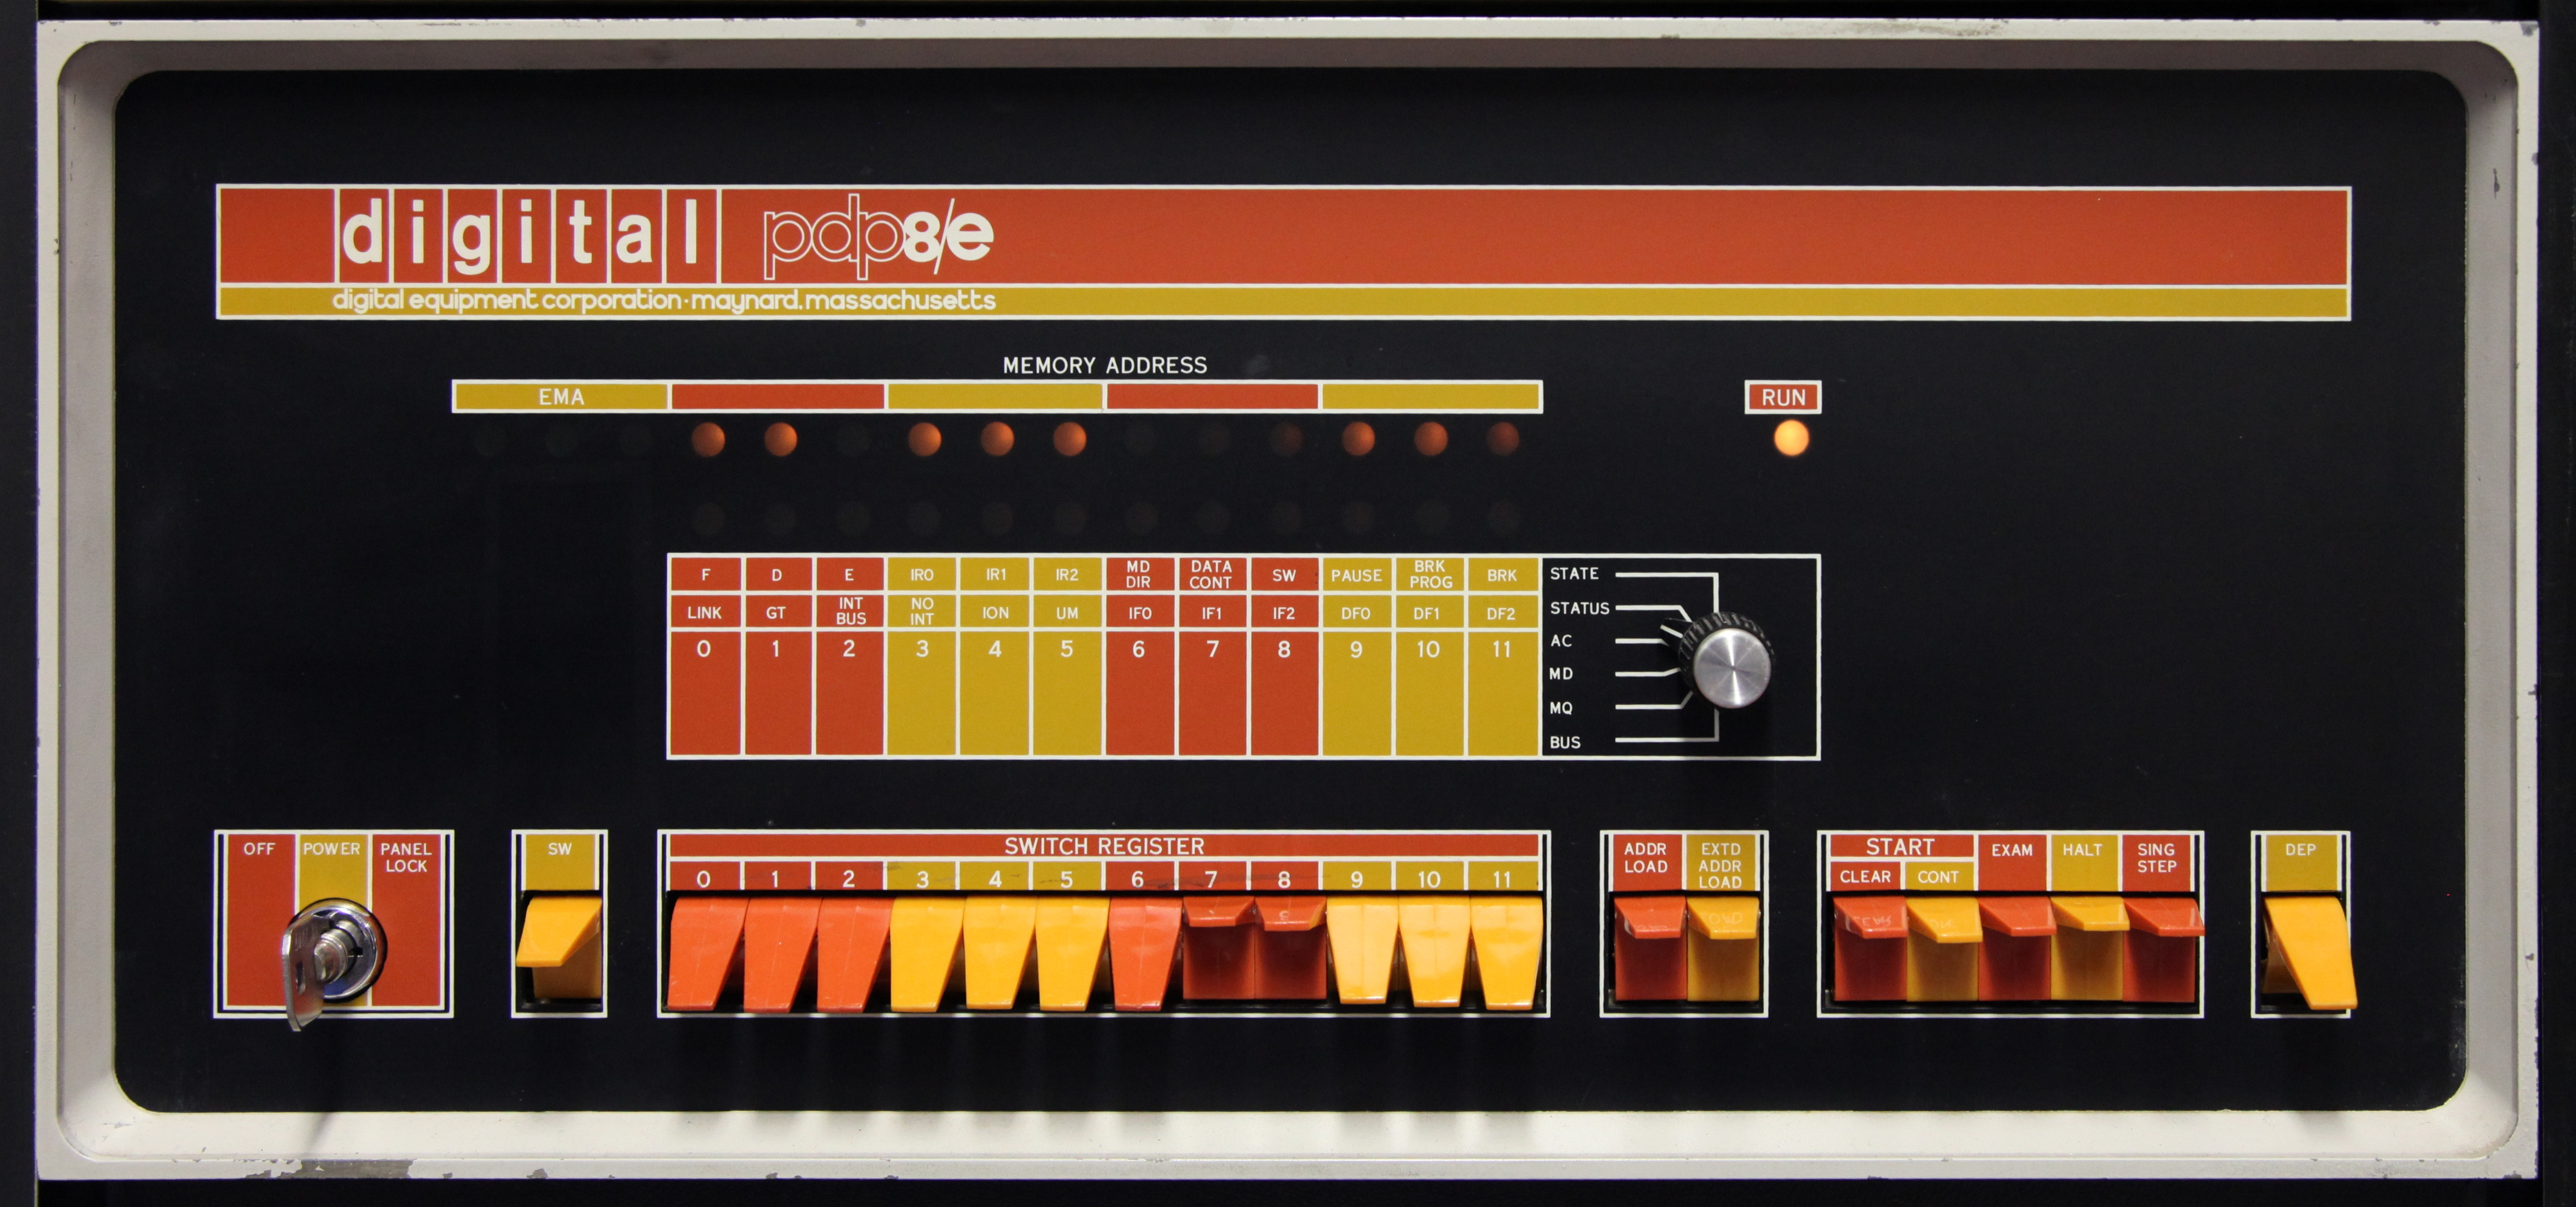 Nice wallpapers PDP-8 1 4636x2173px